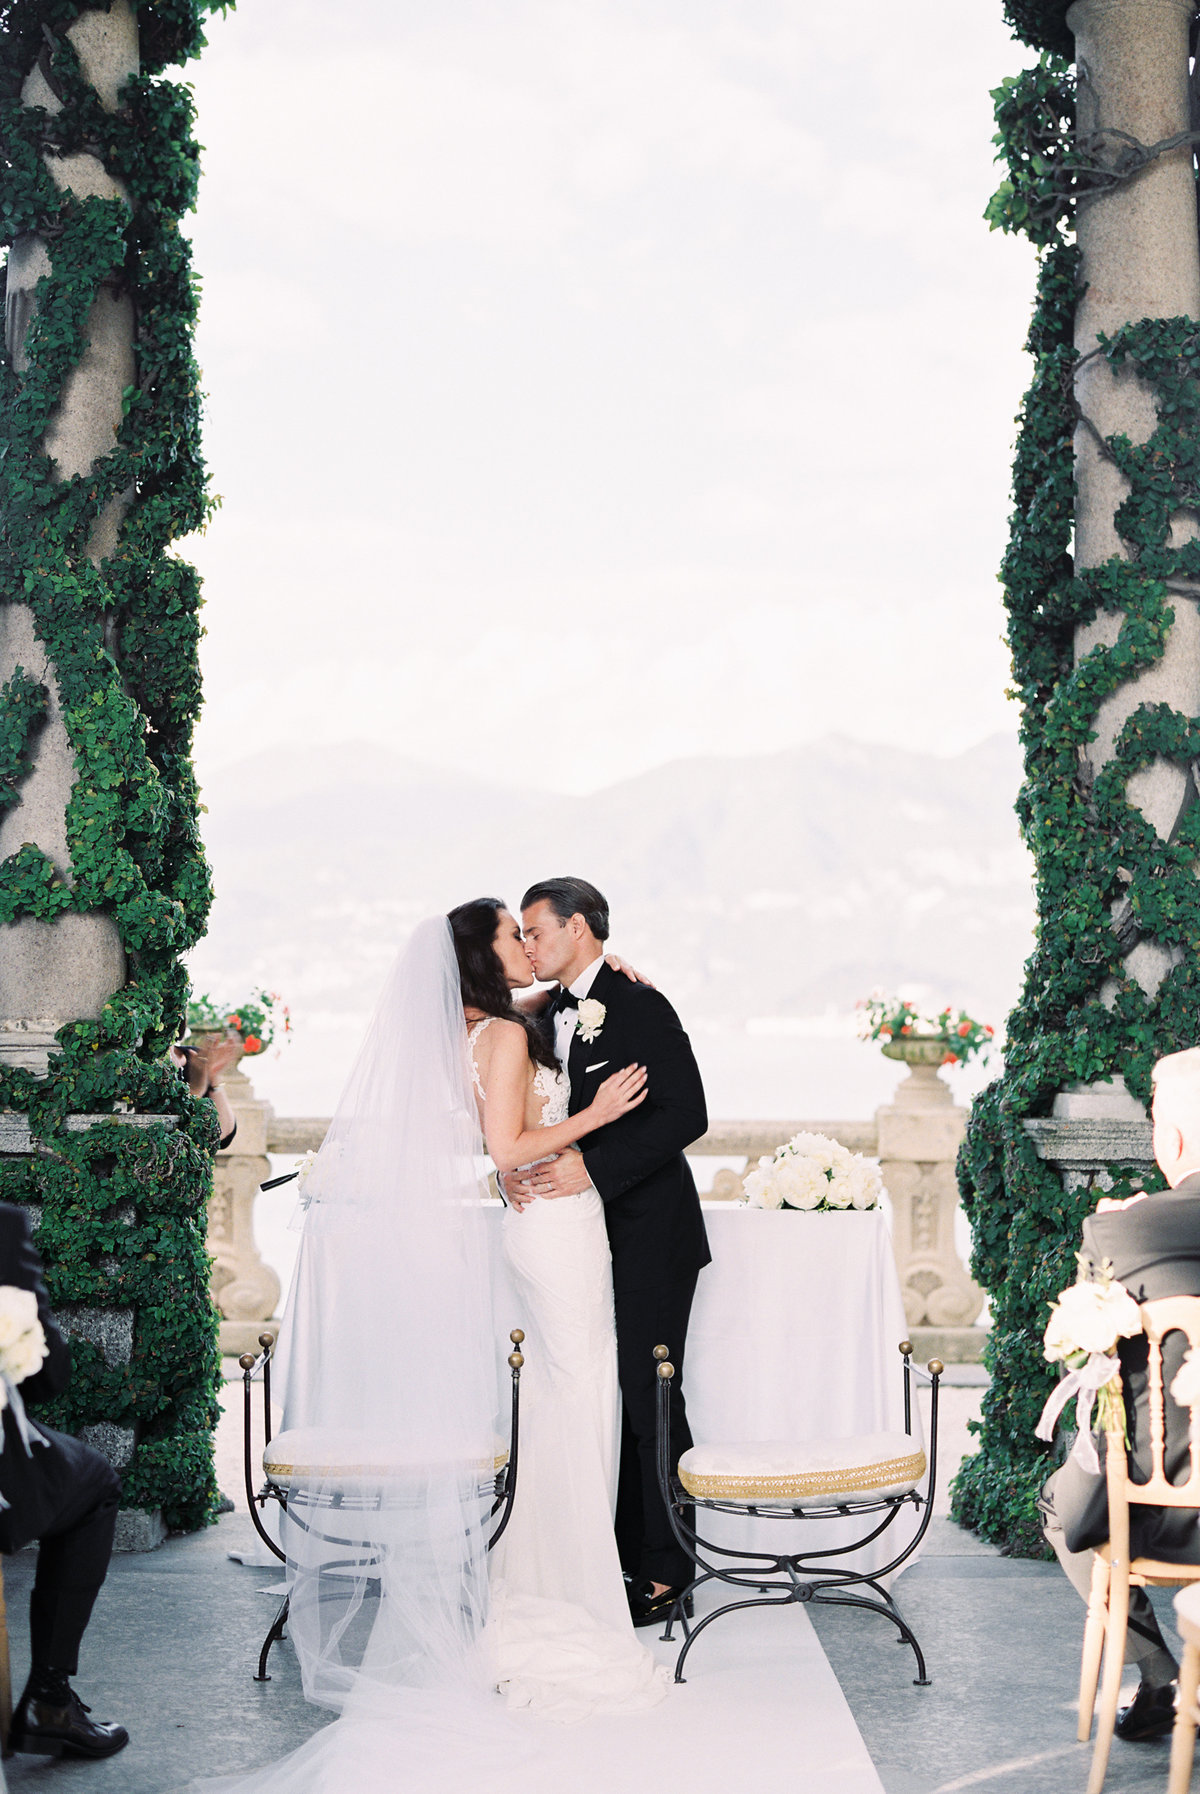 lake-como-italy-destination-wedding-melanie-gabrielle-photogrpahy-403